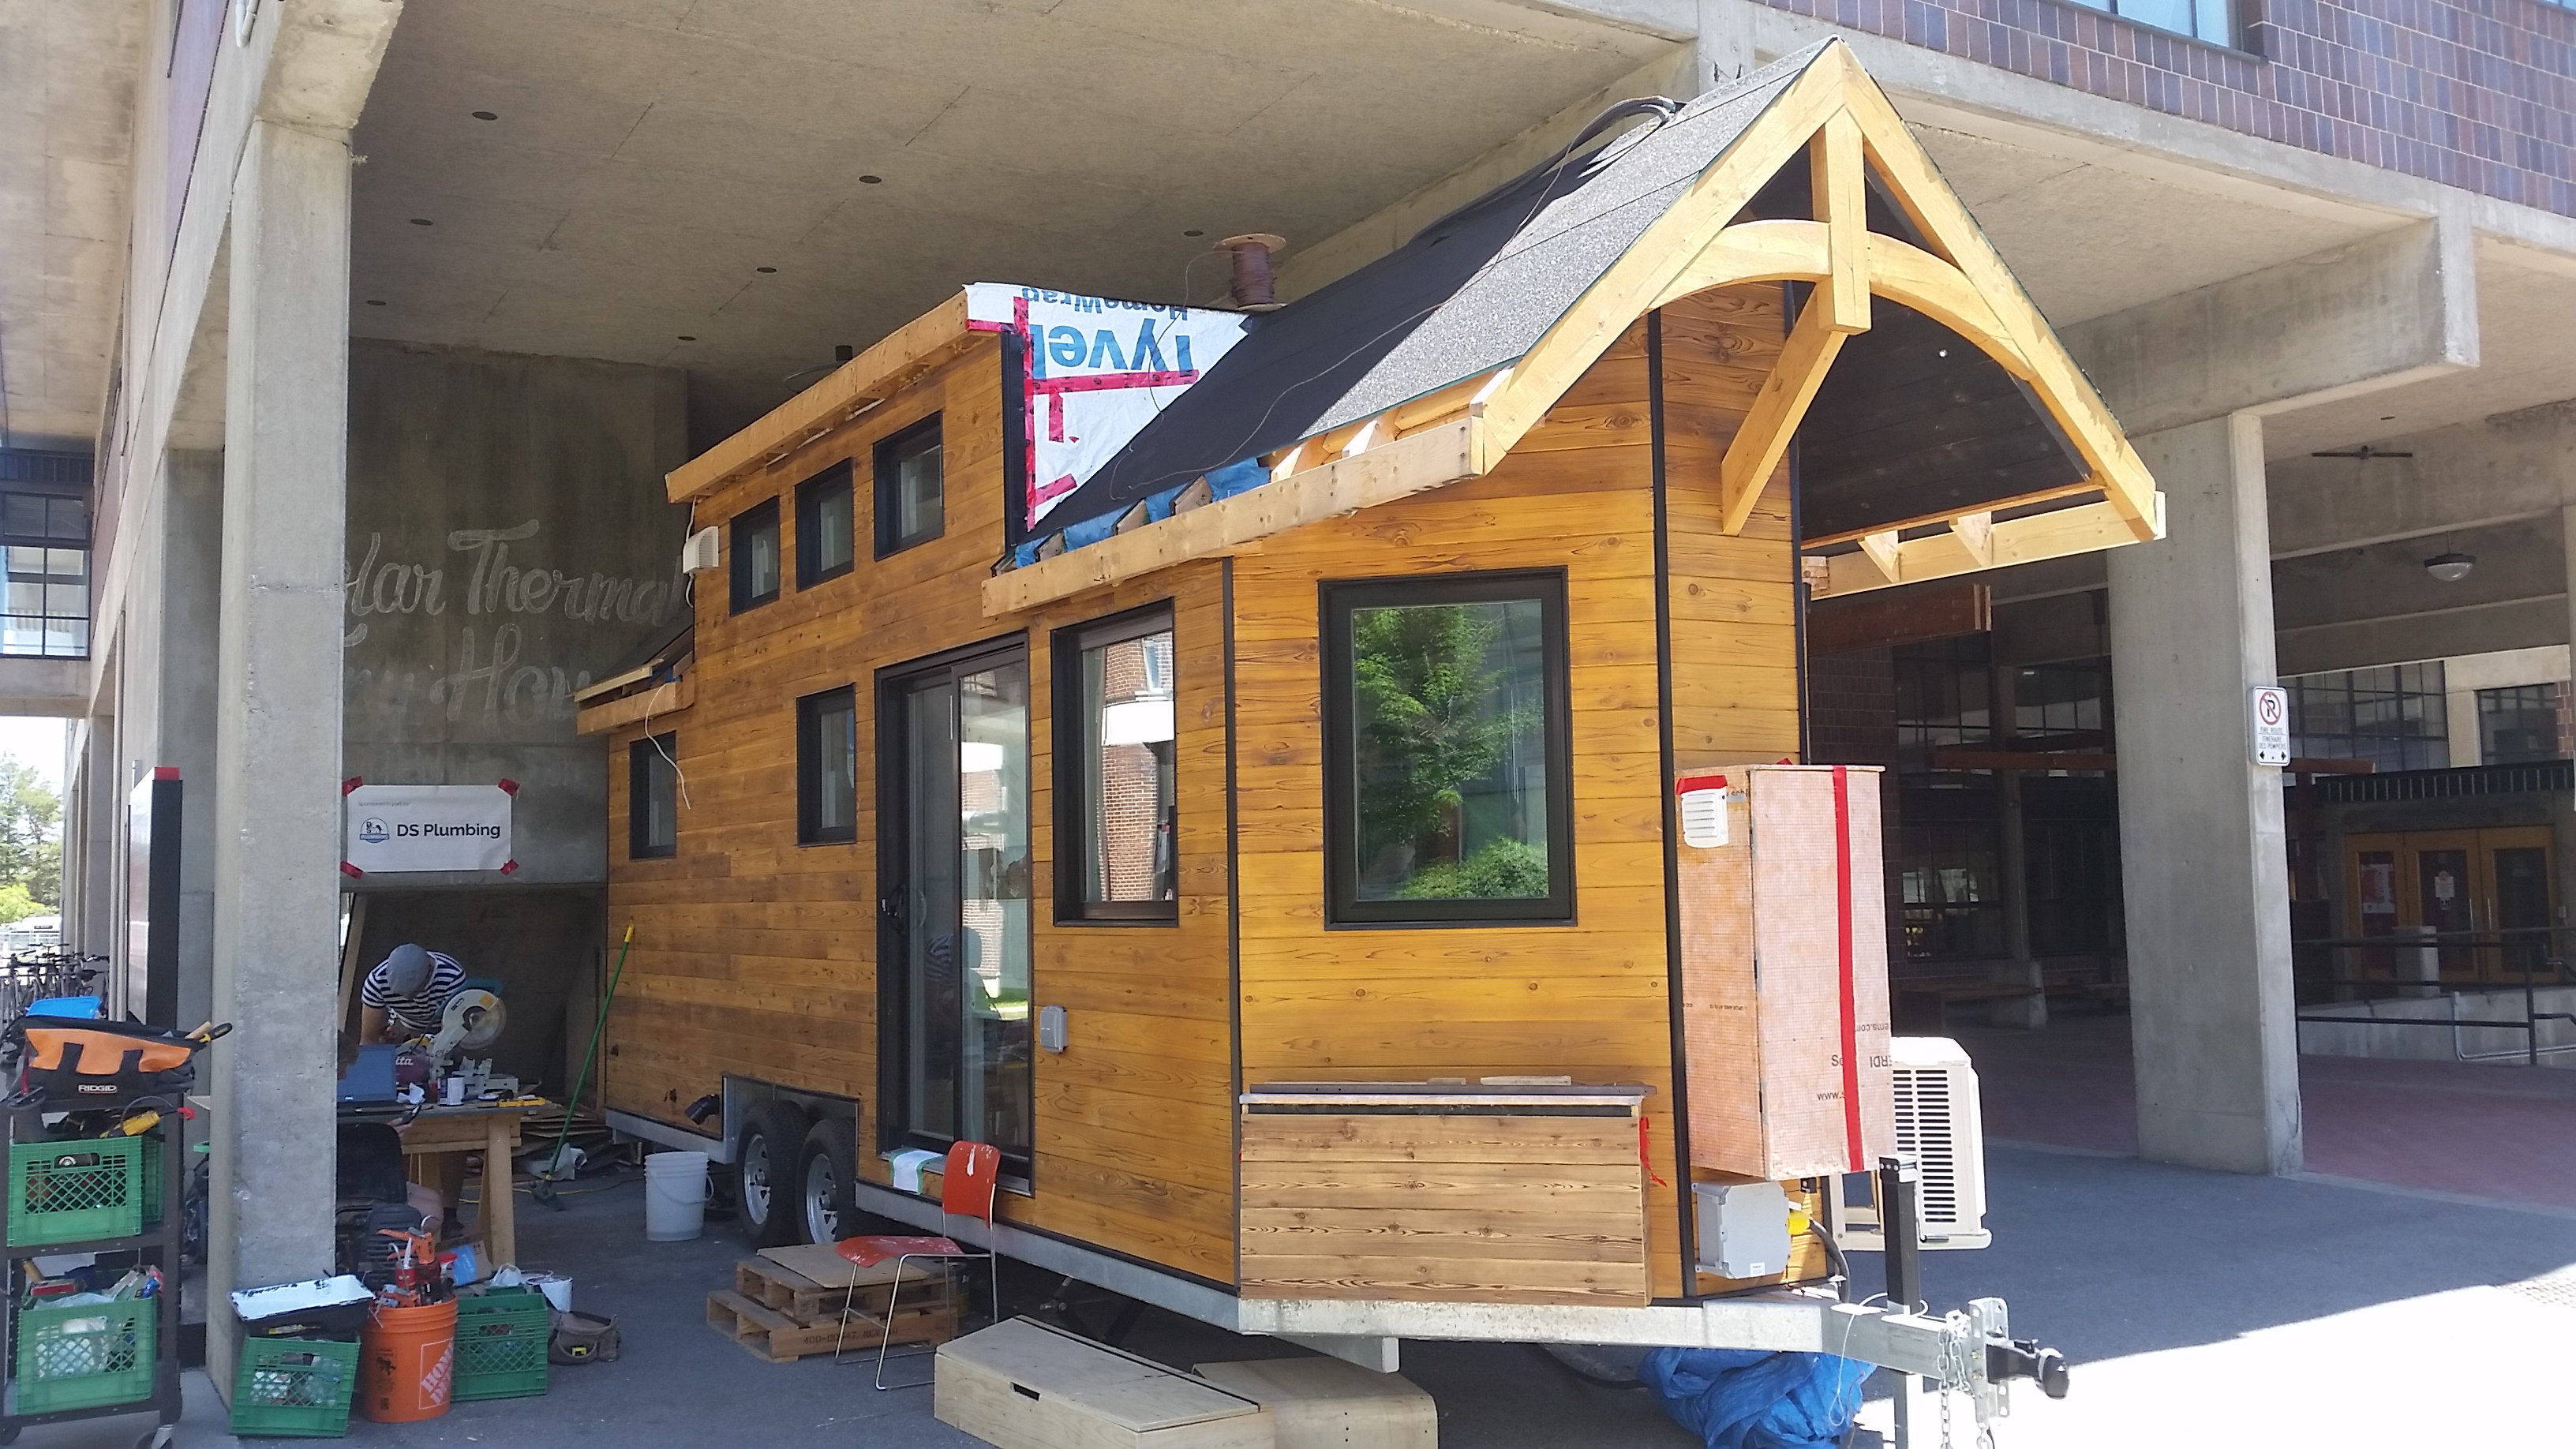 Nomad Tiny Homes >> Wdo Northern Nomad Designing Tiny Houses To Test New Living Habits